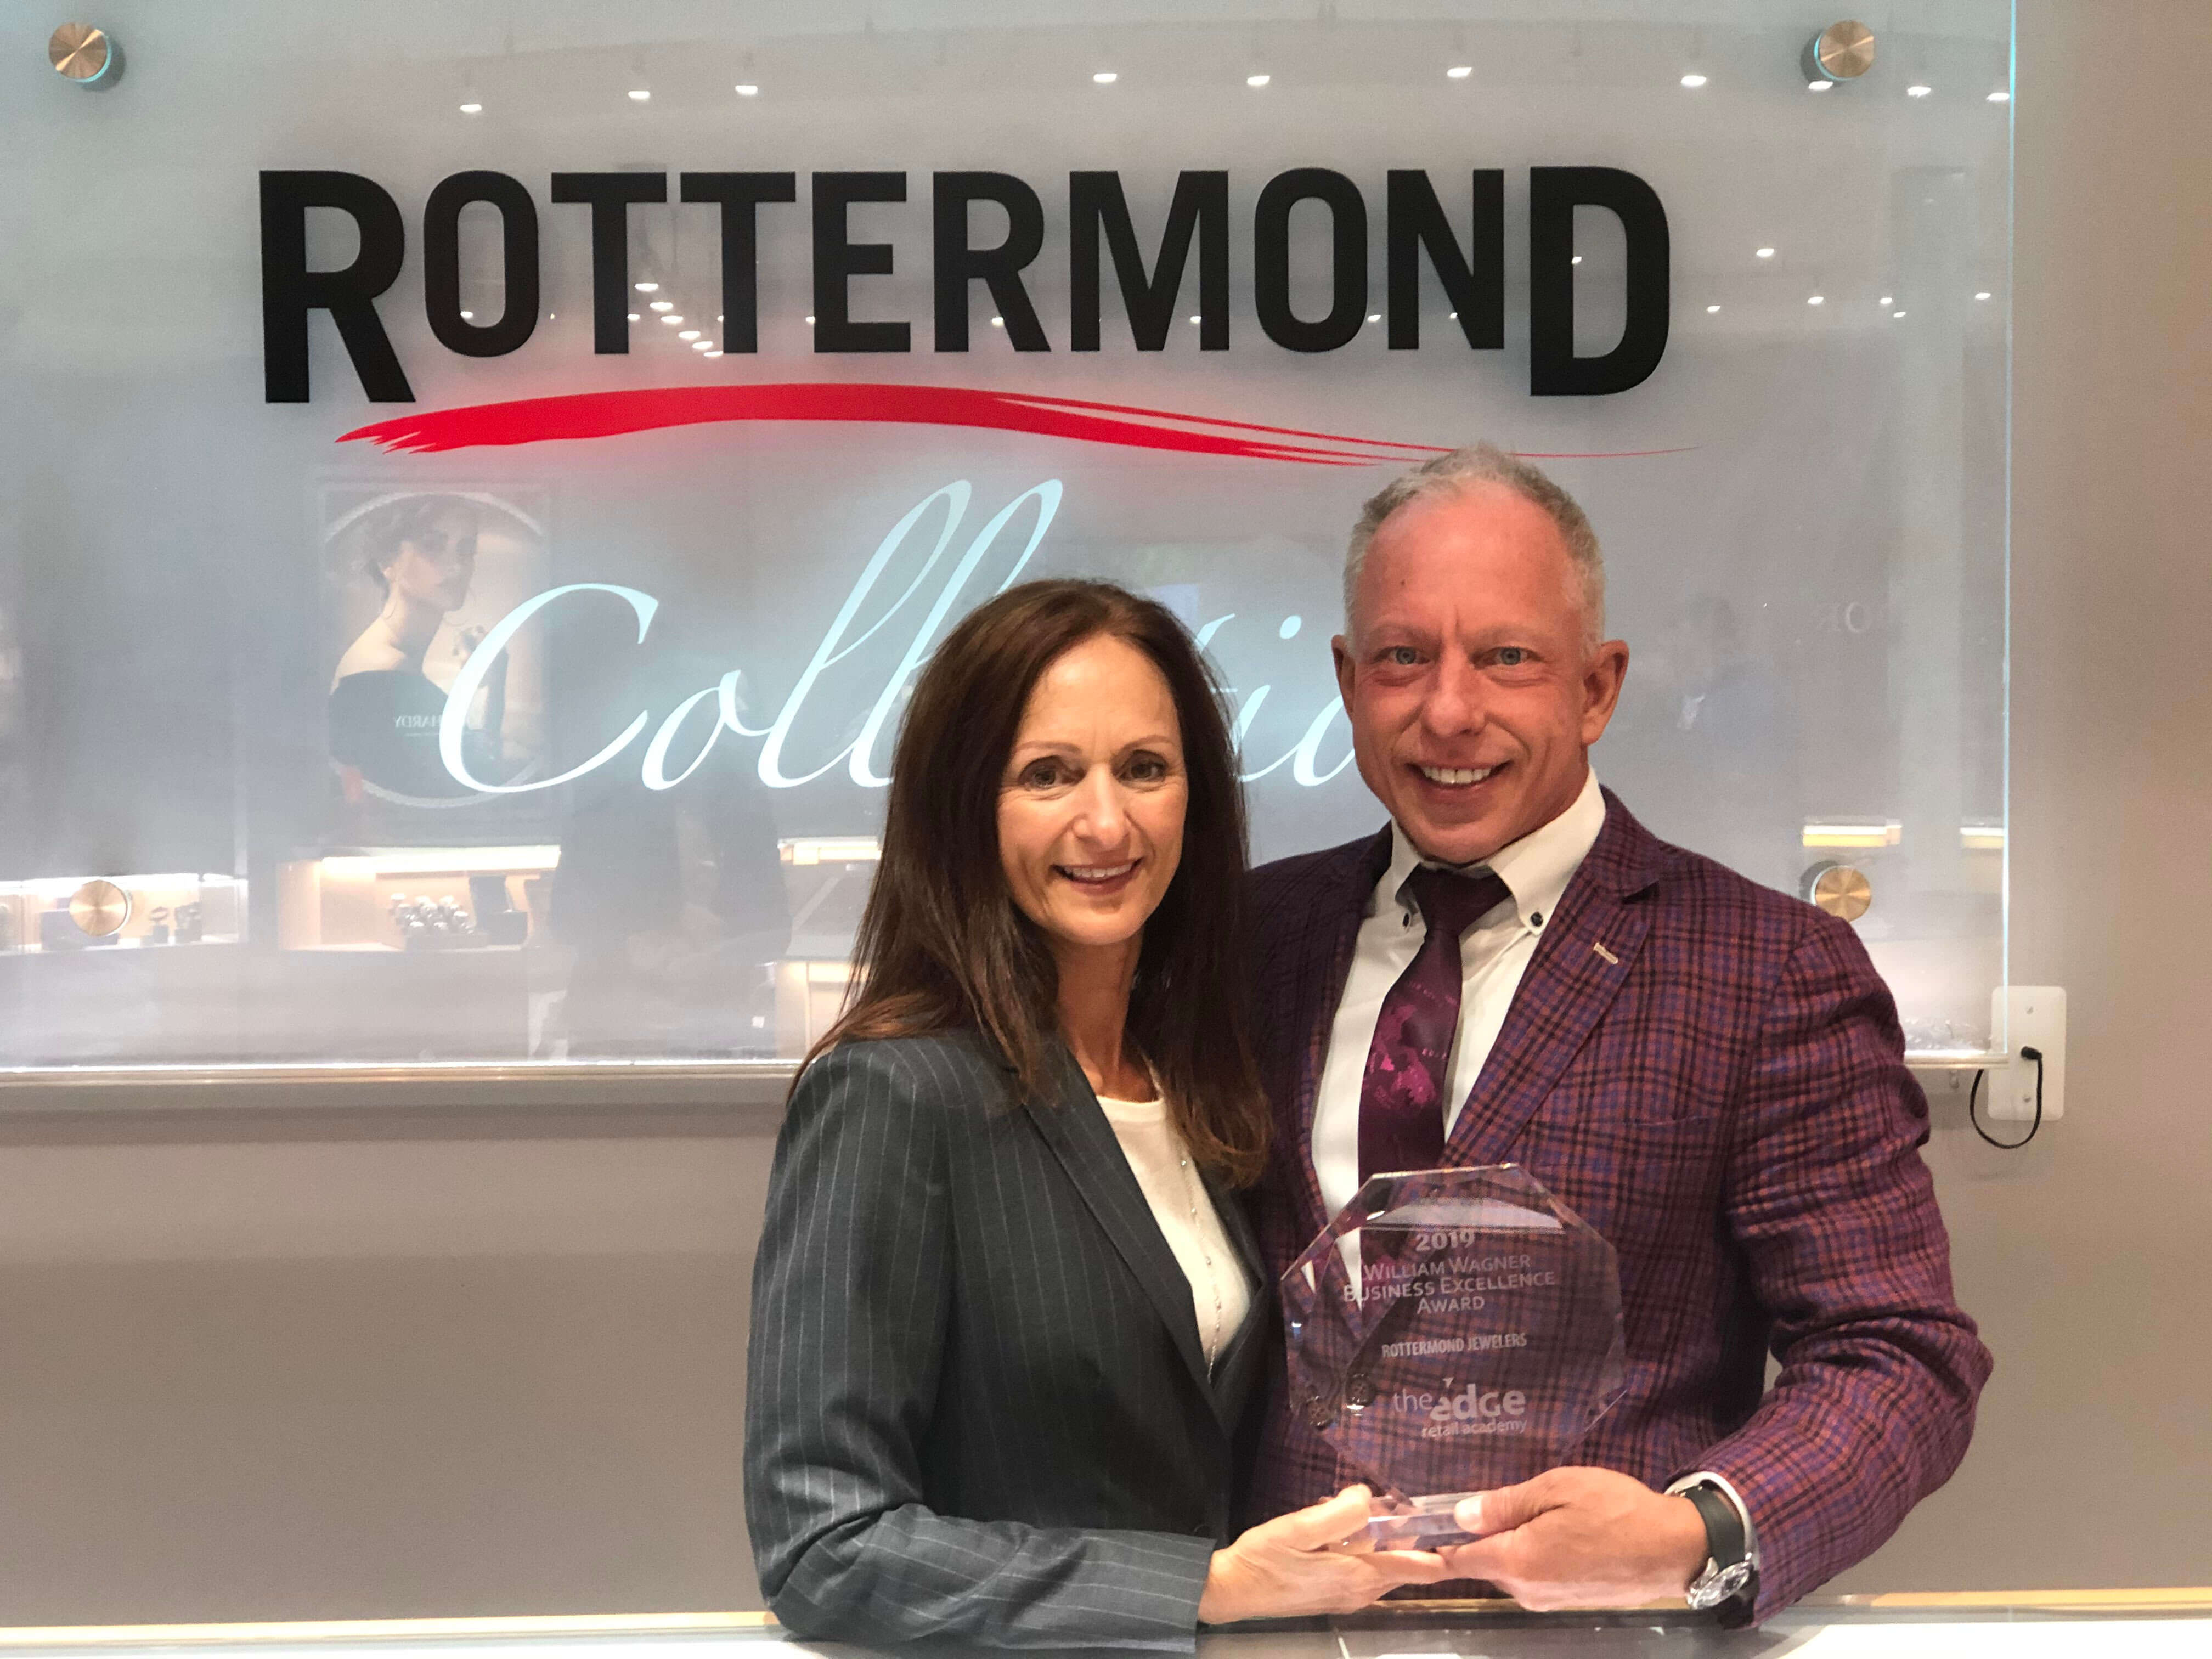 Rottermond Jewelers in Michigan Has Been Awarded the William